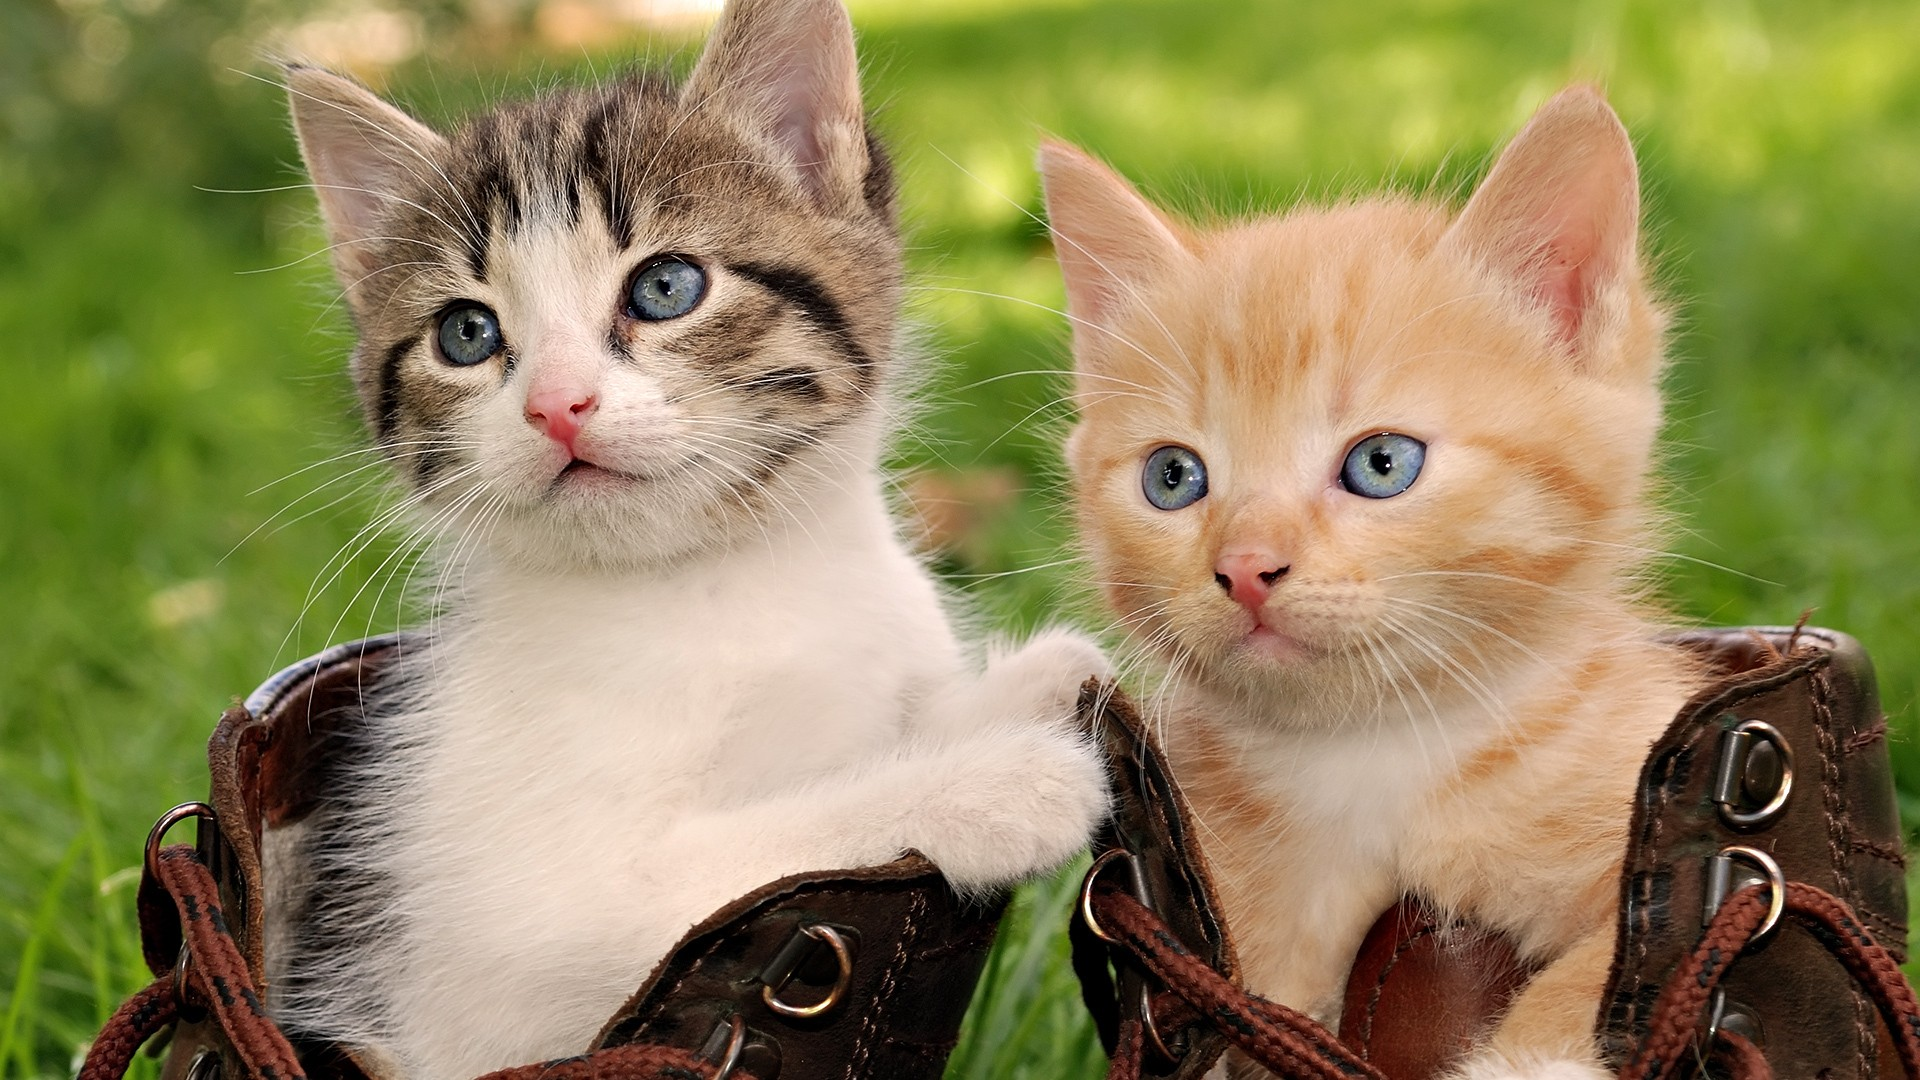 1920x1080 Double Cat Wallpaper HD Wallpapers, Backgrounds, Images, Art Photos. Download · Cute Cat wallpapers ...